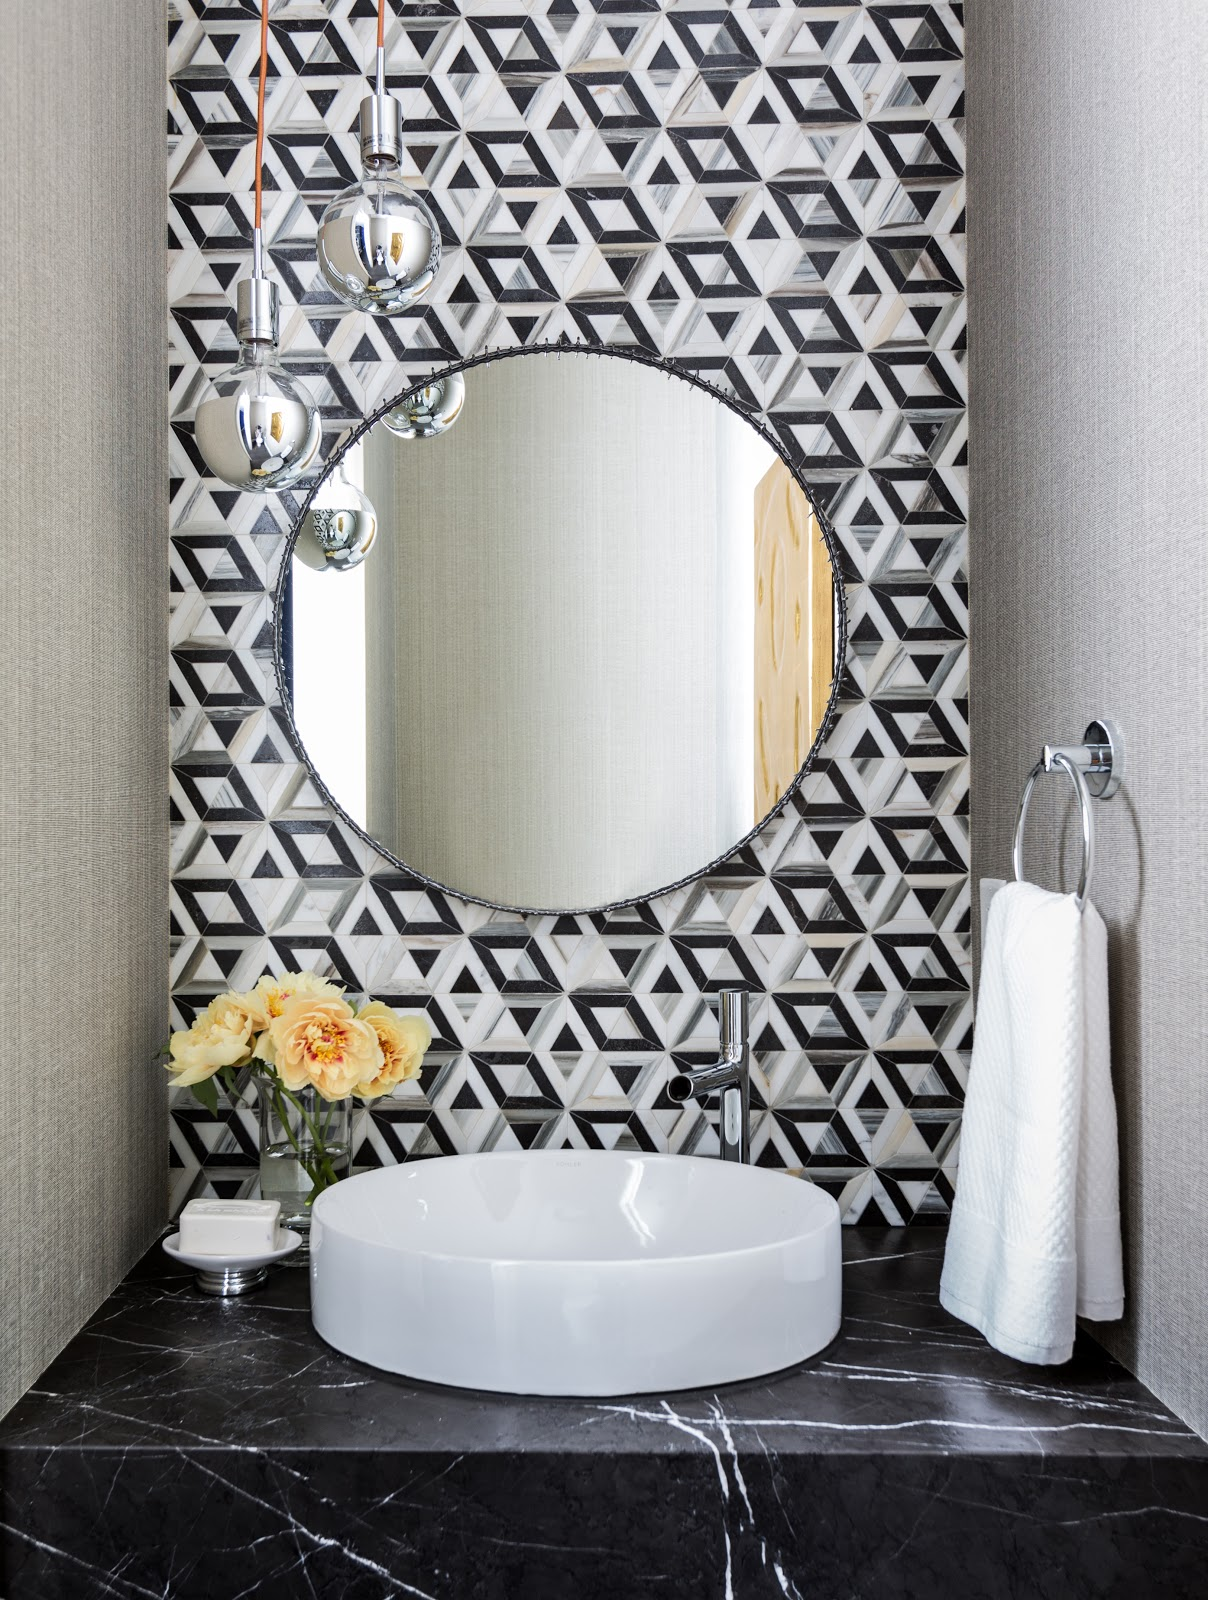 Liaison Kelly Wearstler tile by Ann Sacks - Laura U Interior design black and white powder bathroom